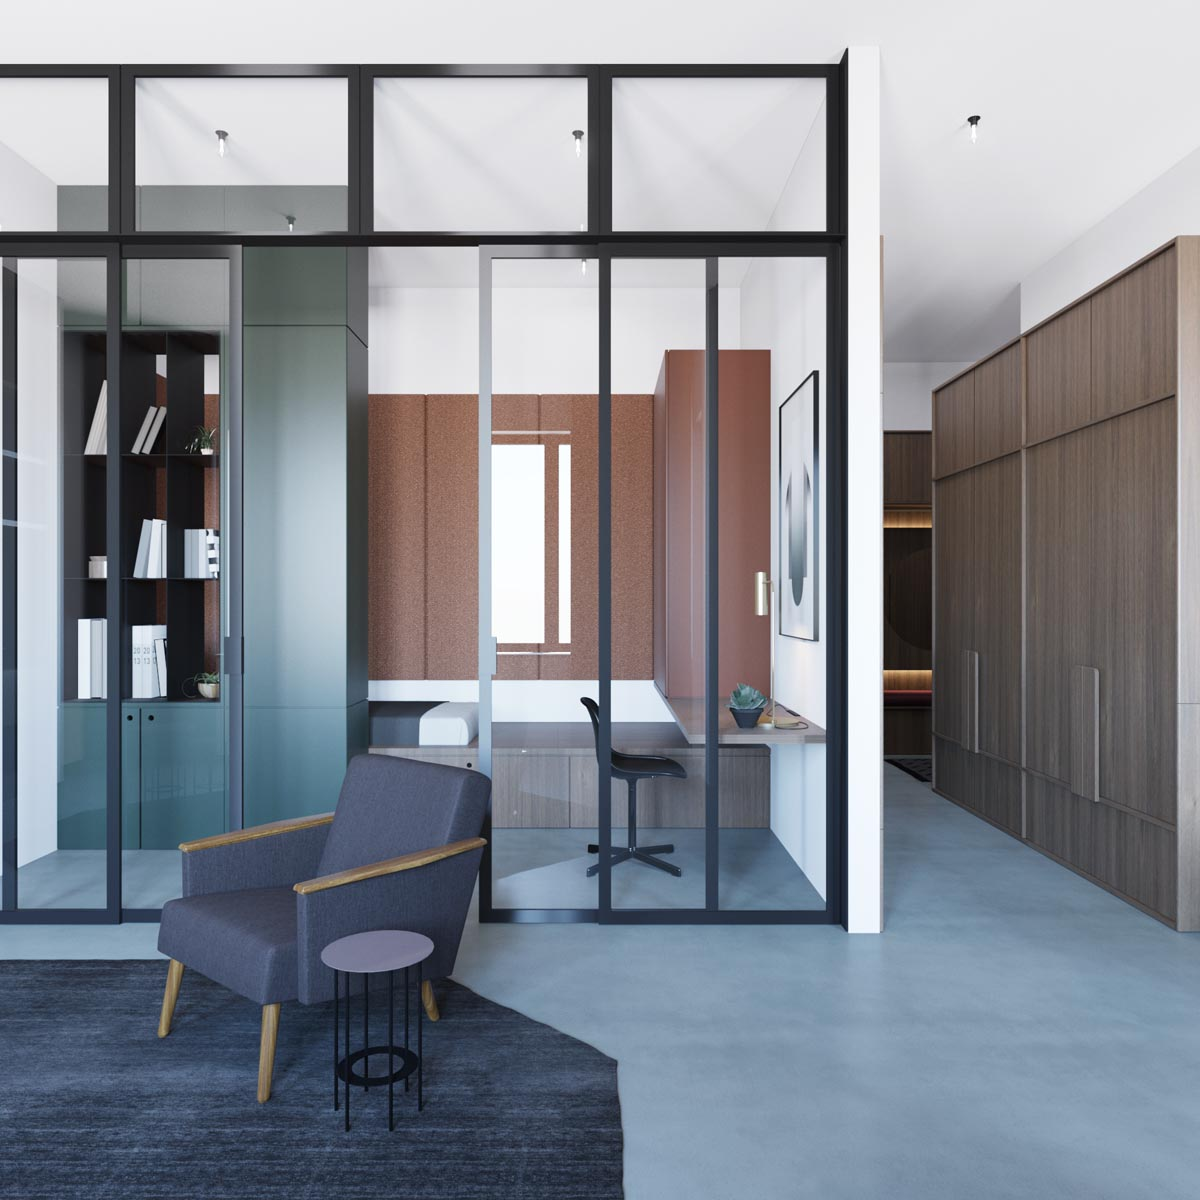 Chilled Out Modern Home in Muted Colour images 4